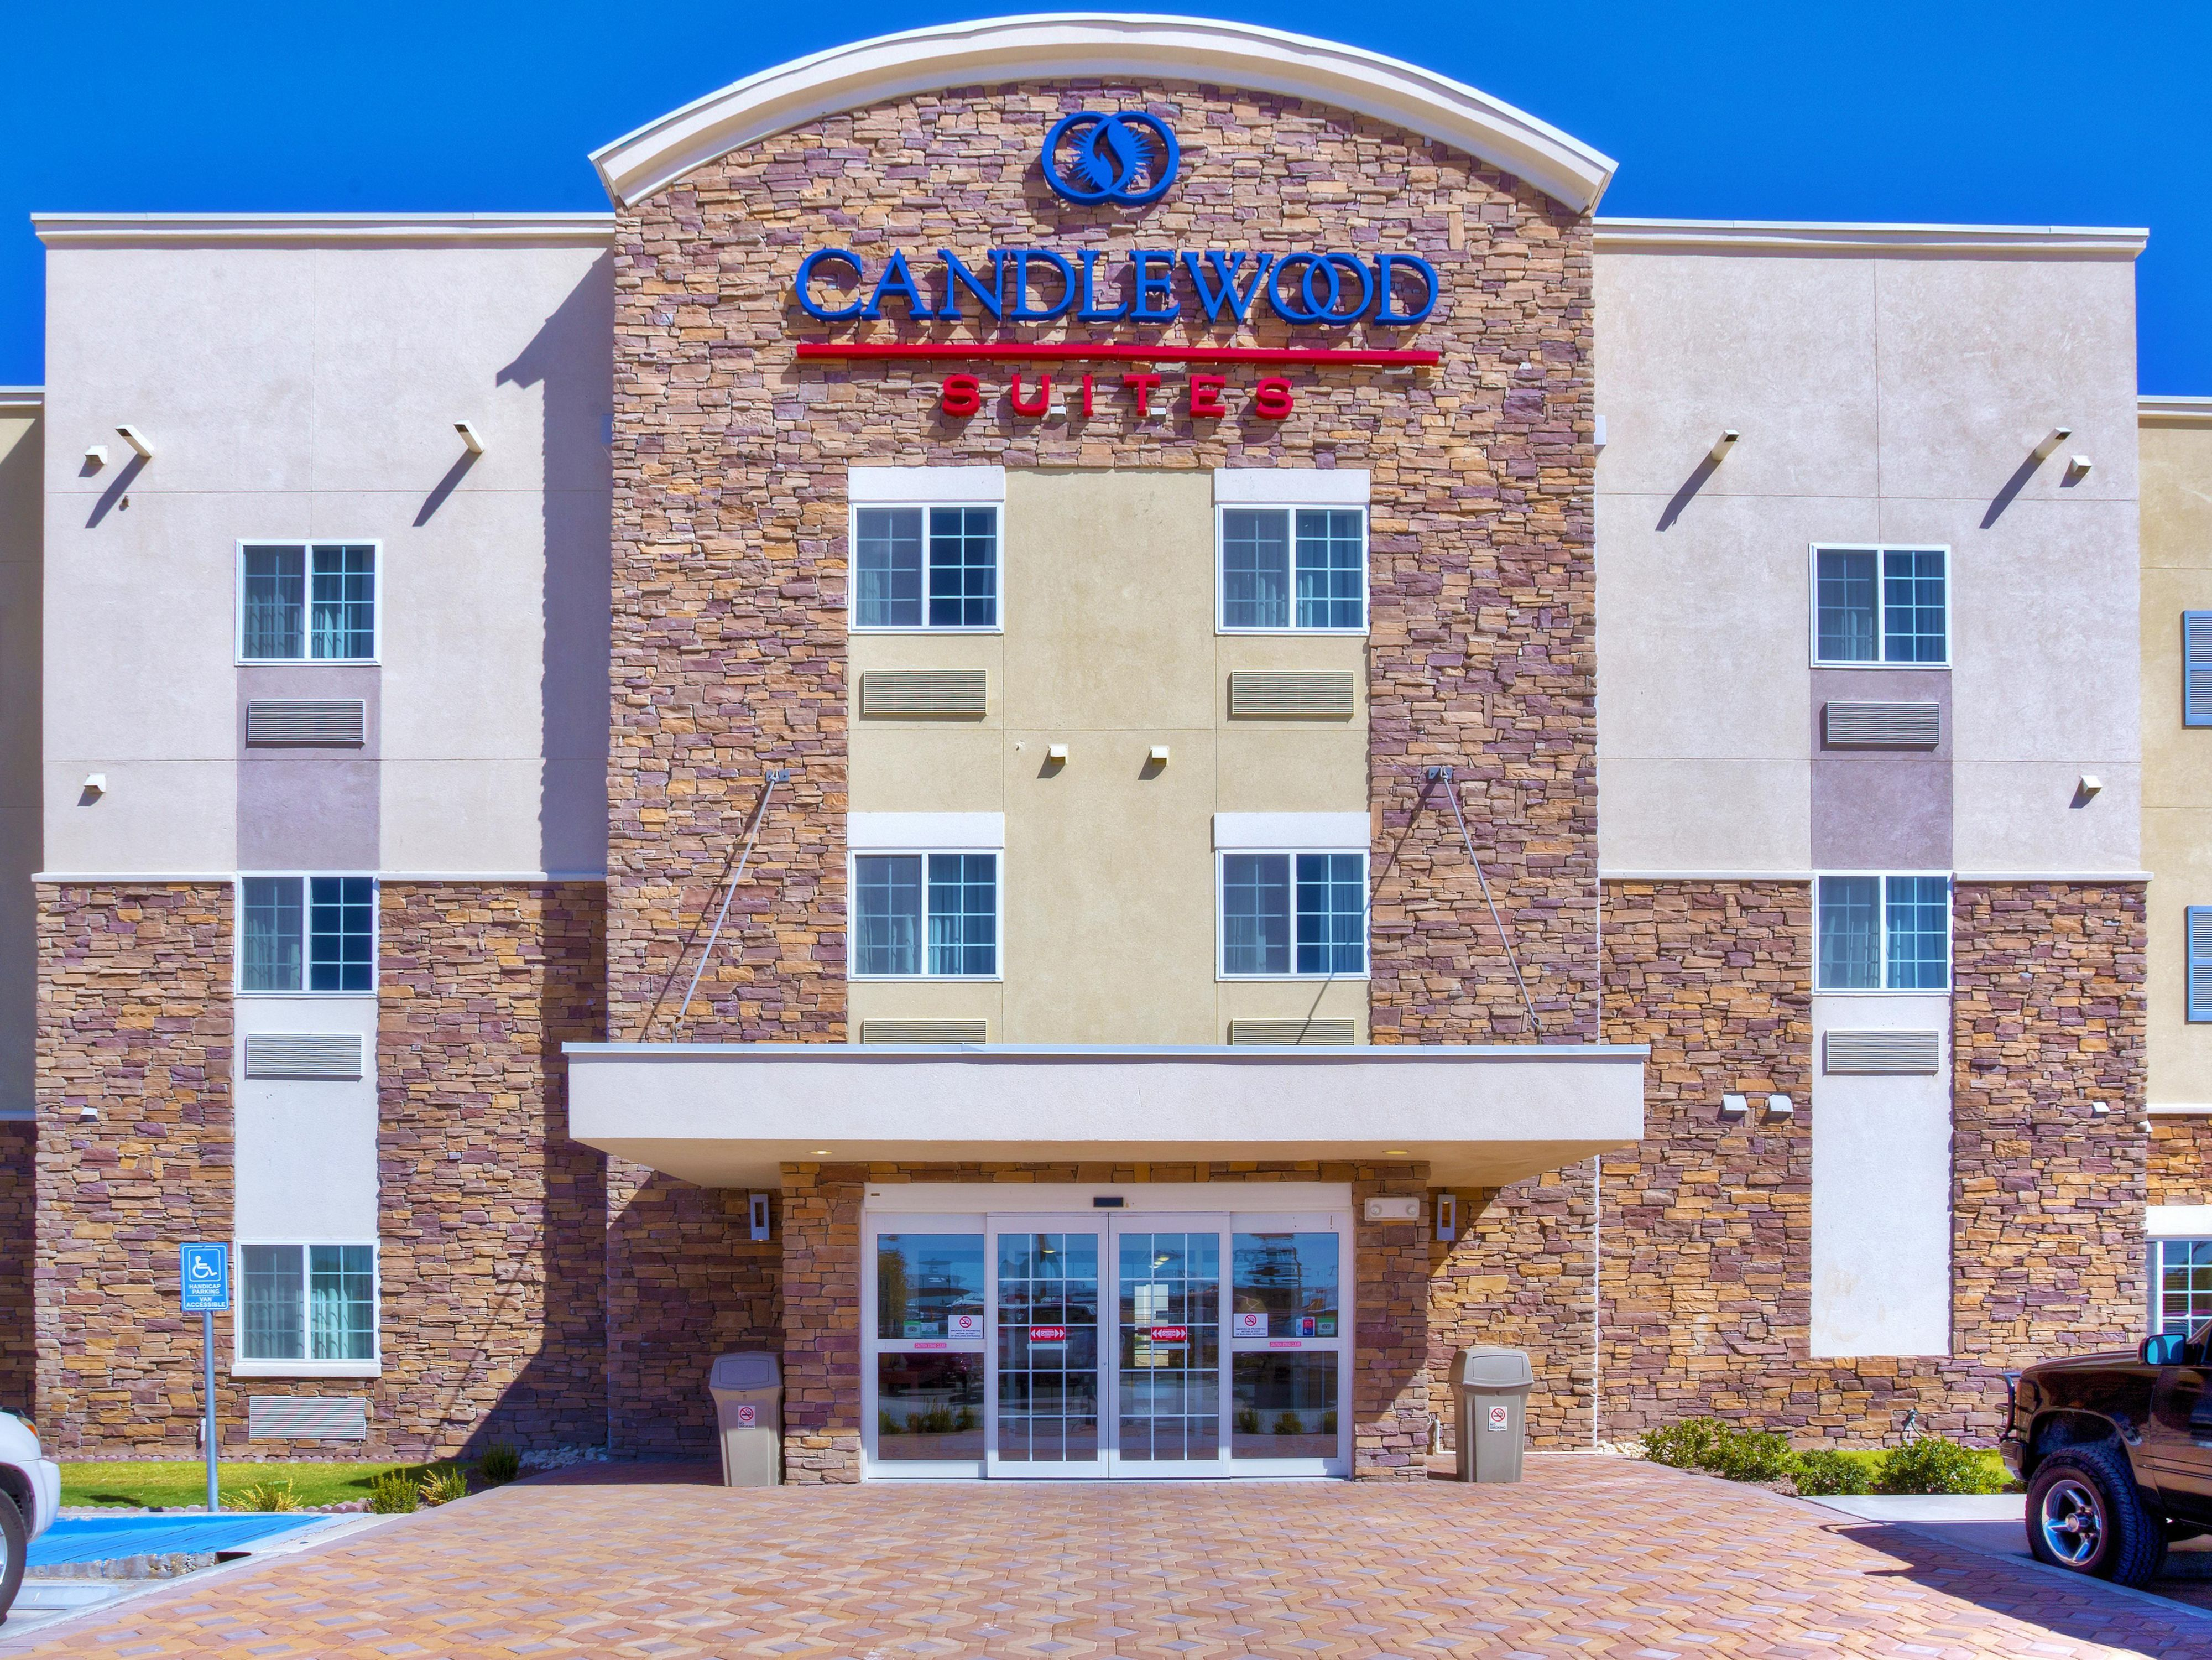 Fort Stockton Hotels Candlewood Suites Extended Stay Hotel In Texas